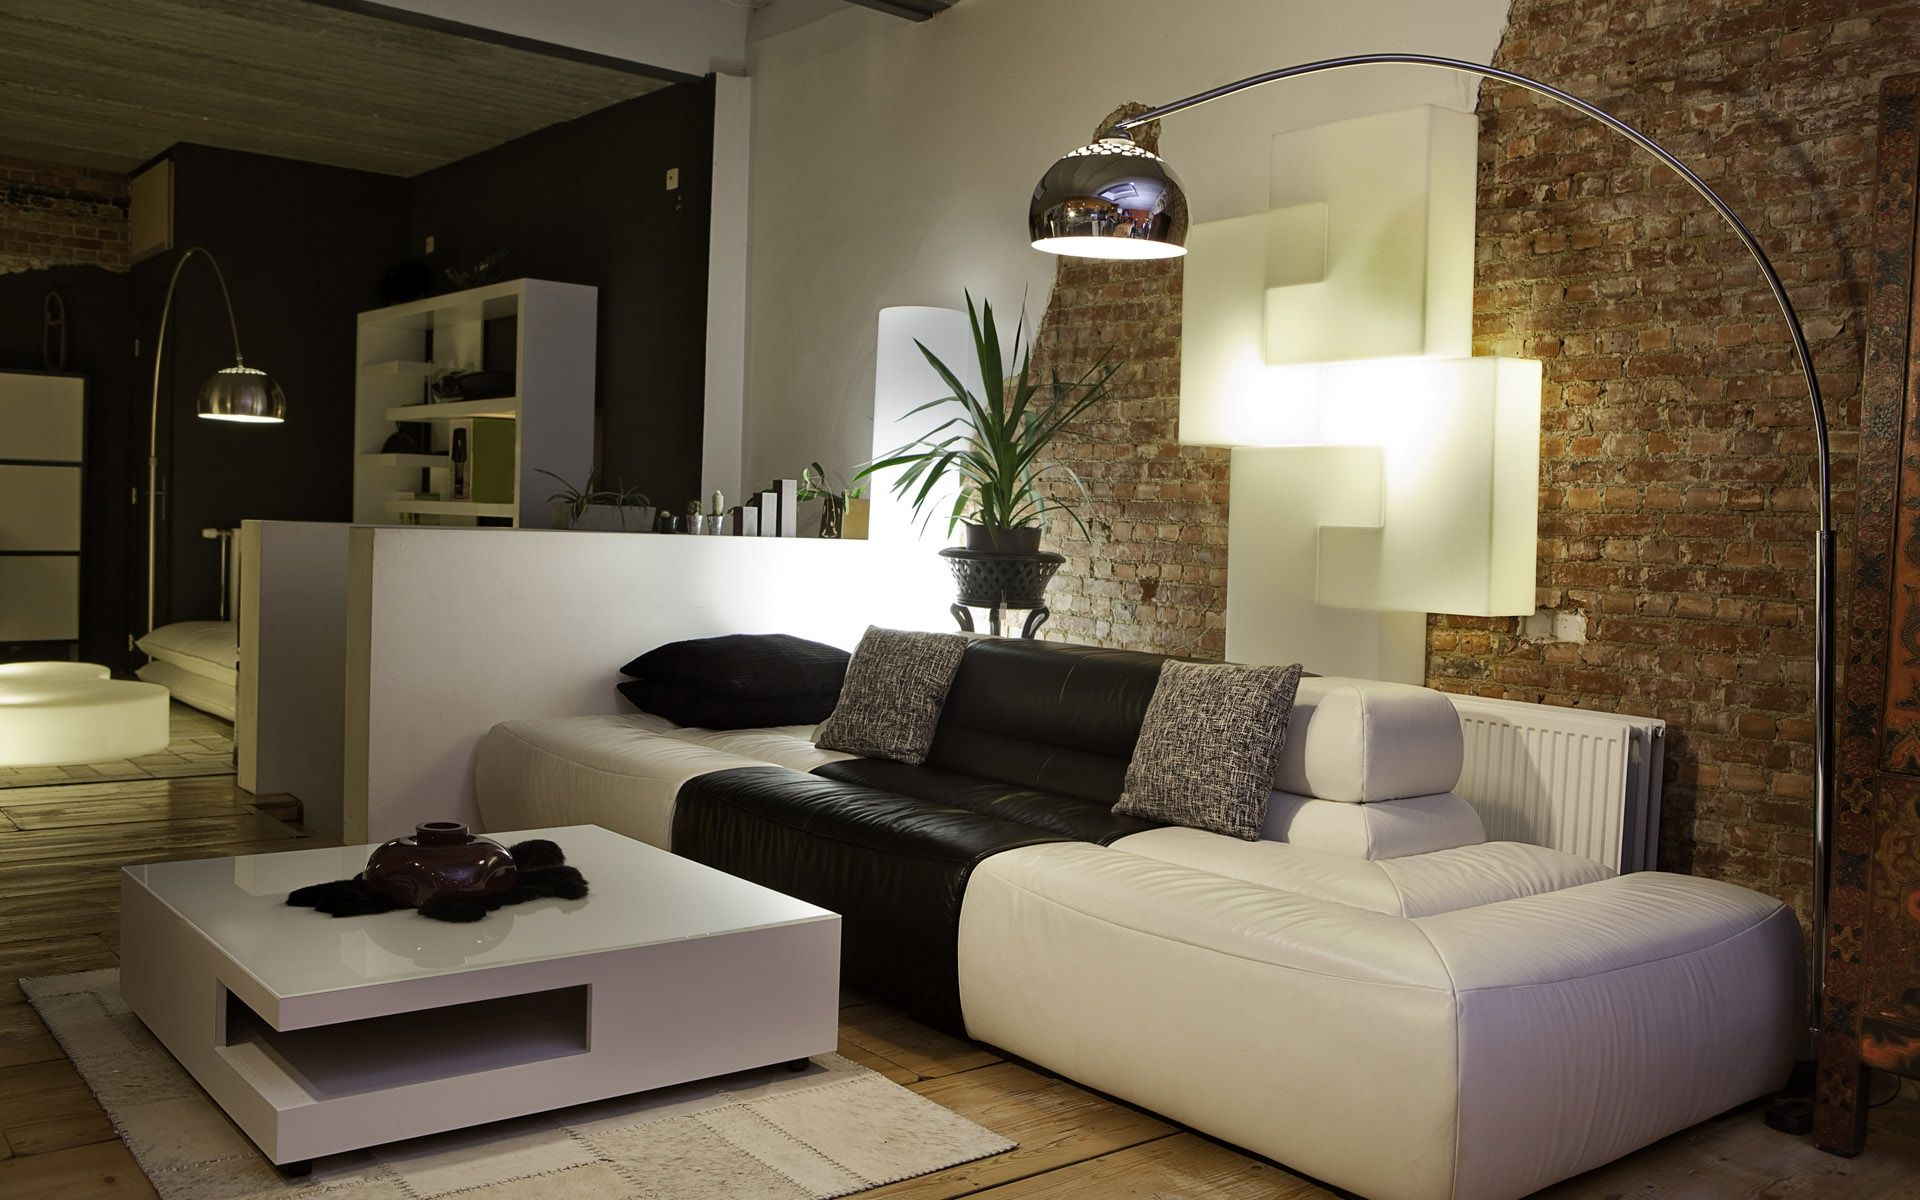 Living Room Living Room Style Ideas contemporary wallpaper living room decor ideas pinterest rooms for and living